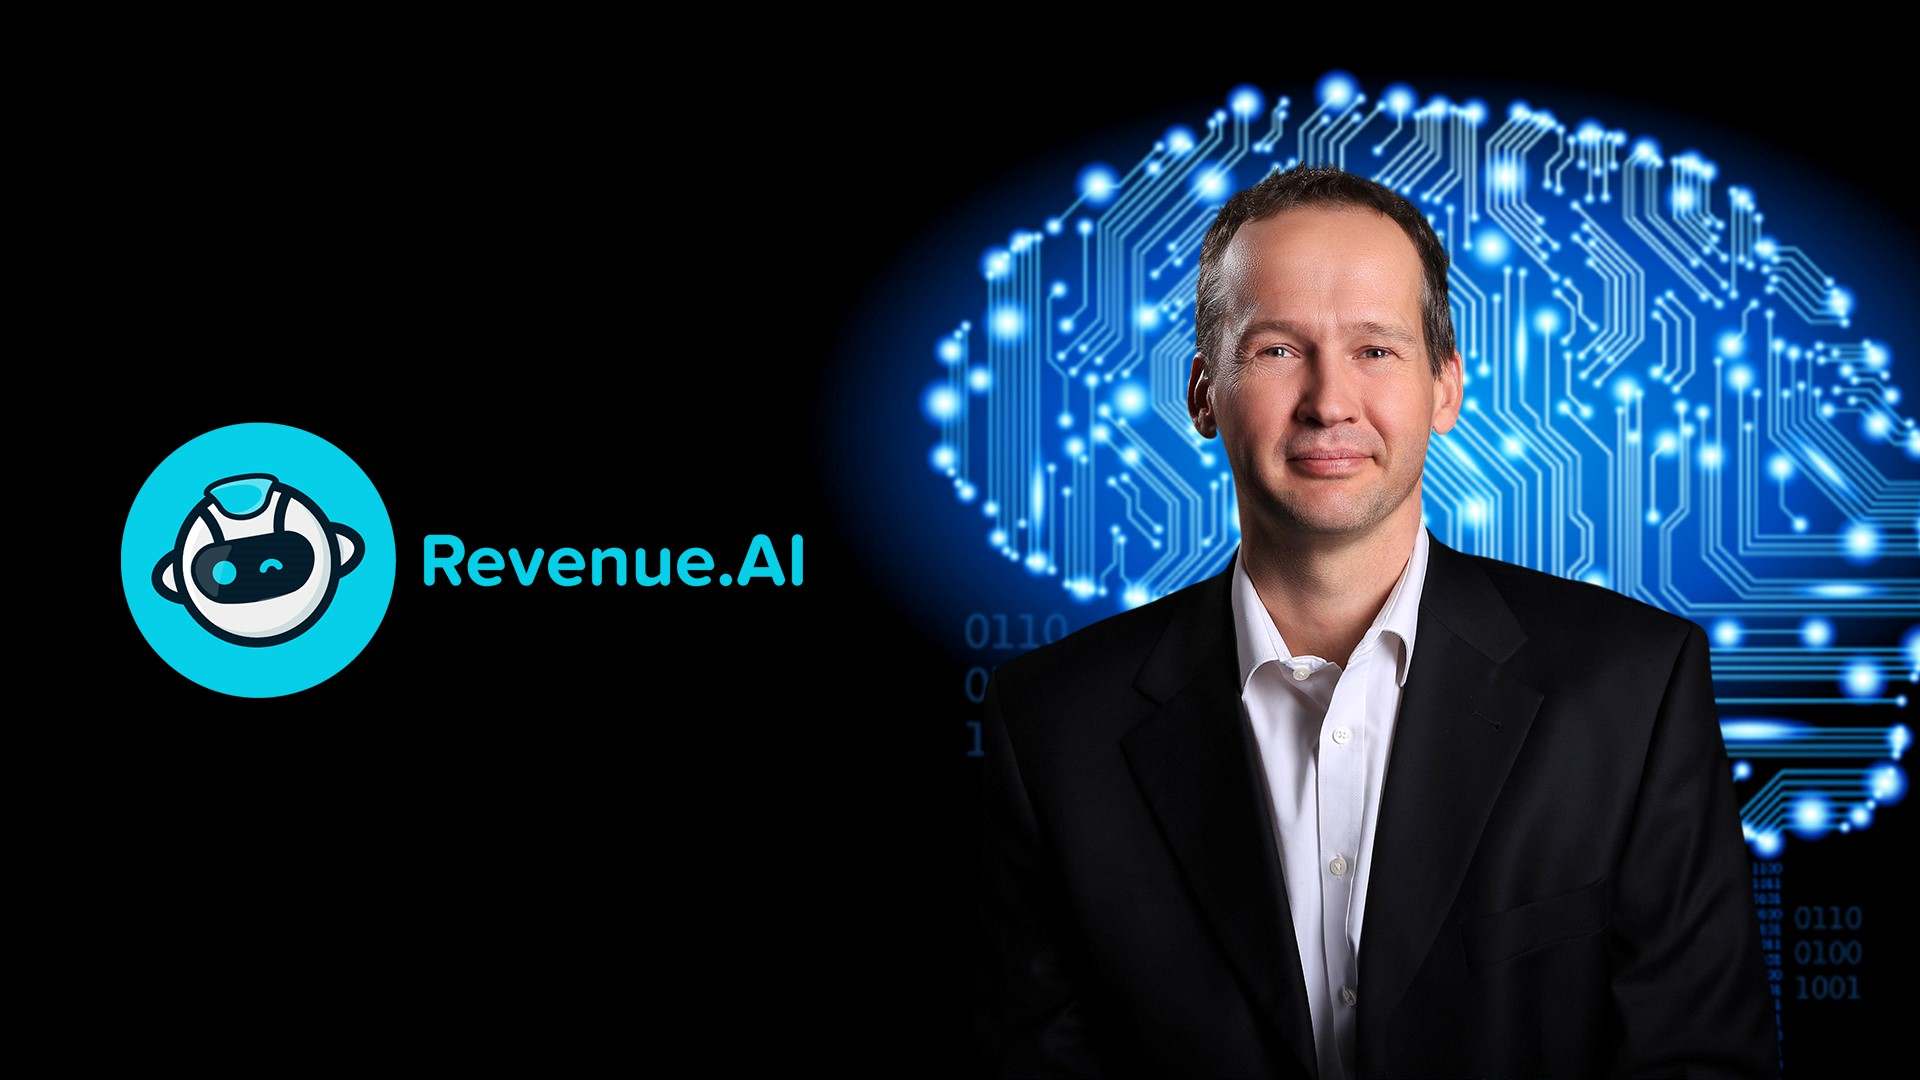 Revenue.AI offers SMEs transparency and agility thought only available to the world's tech giants